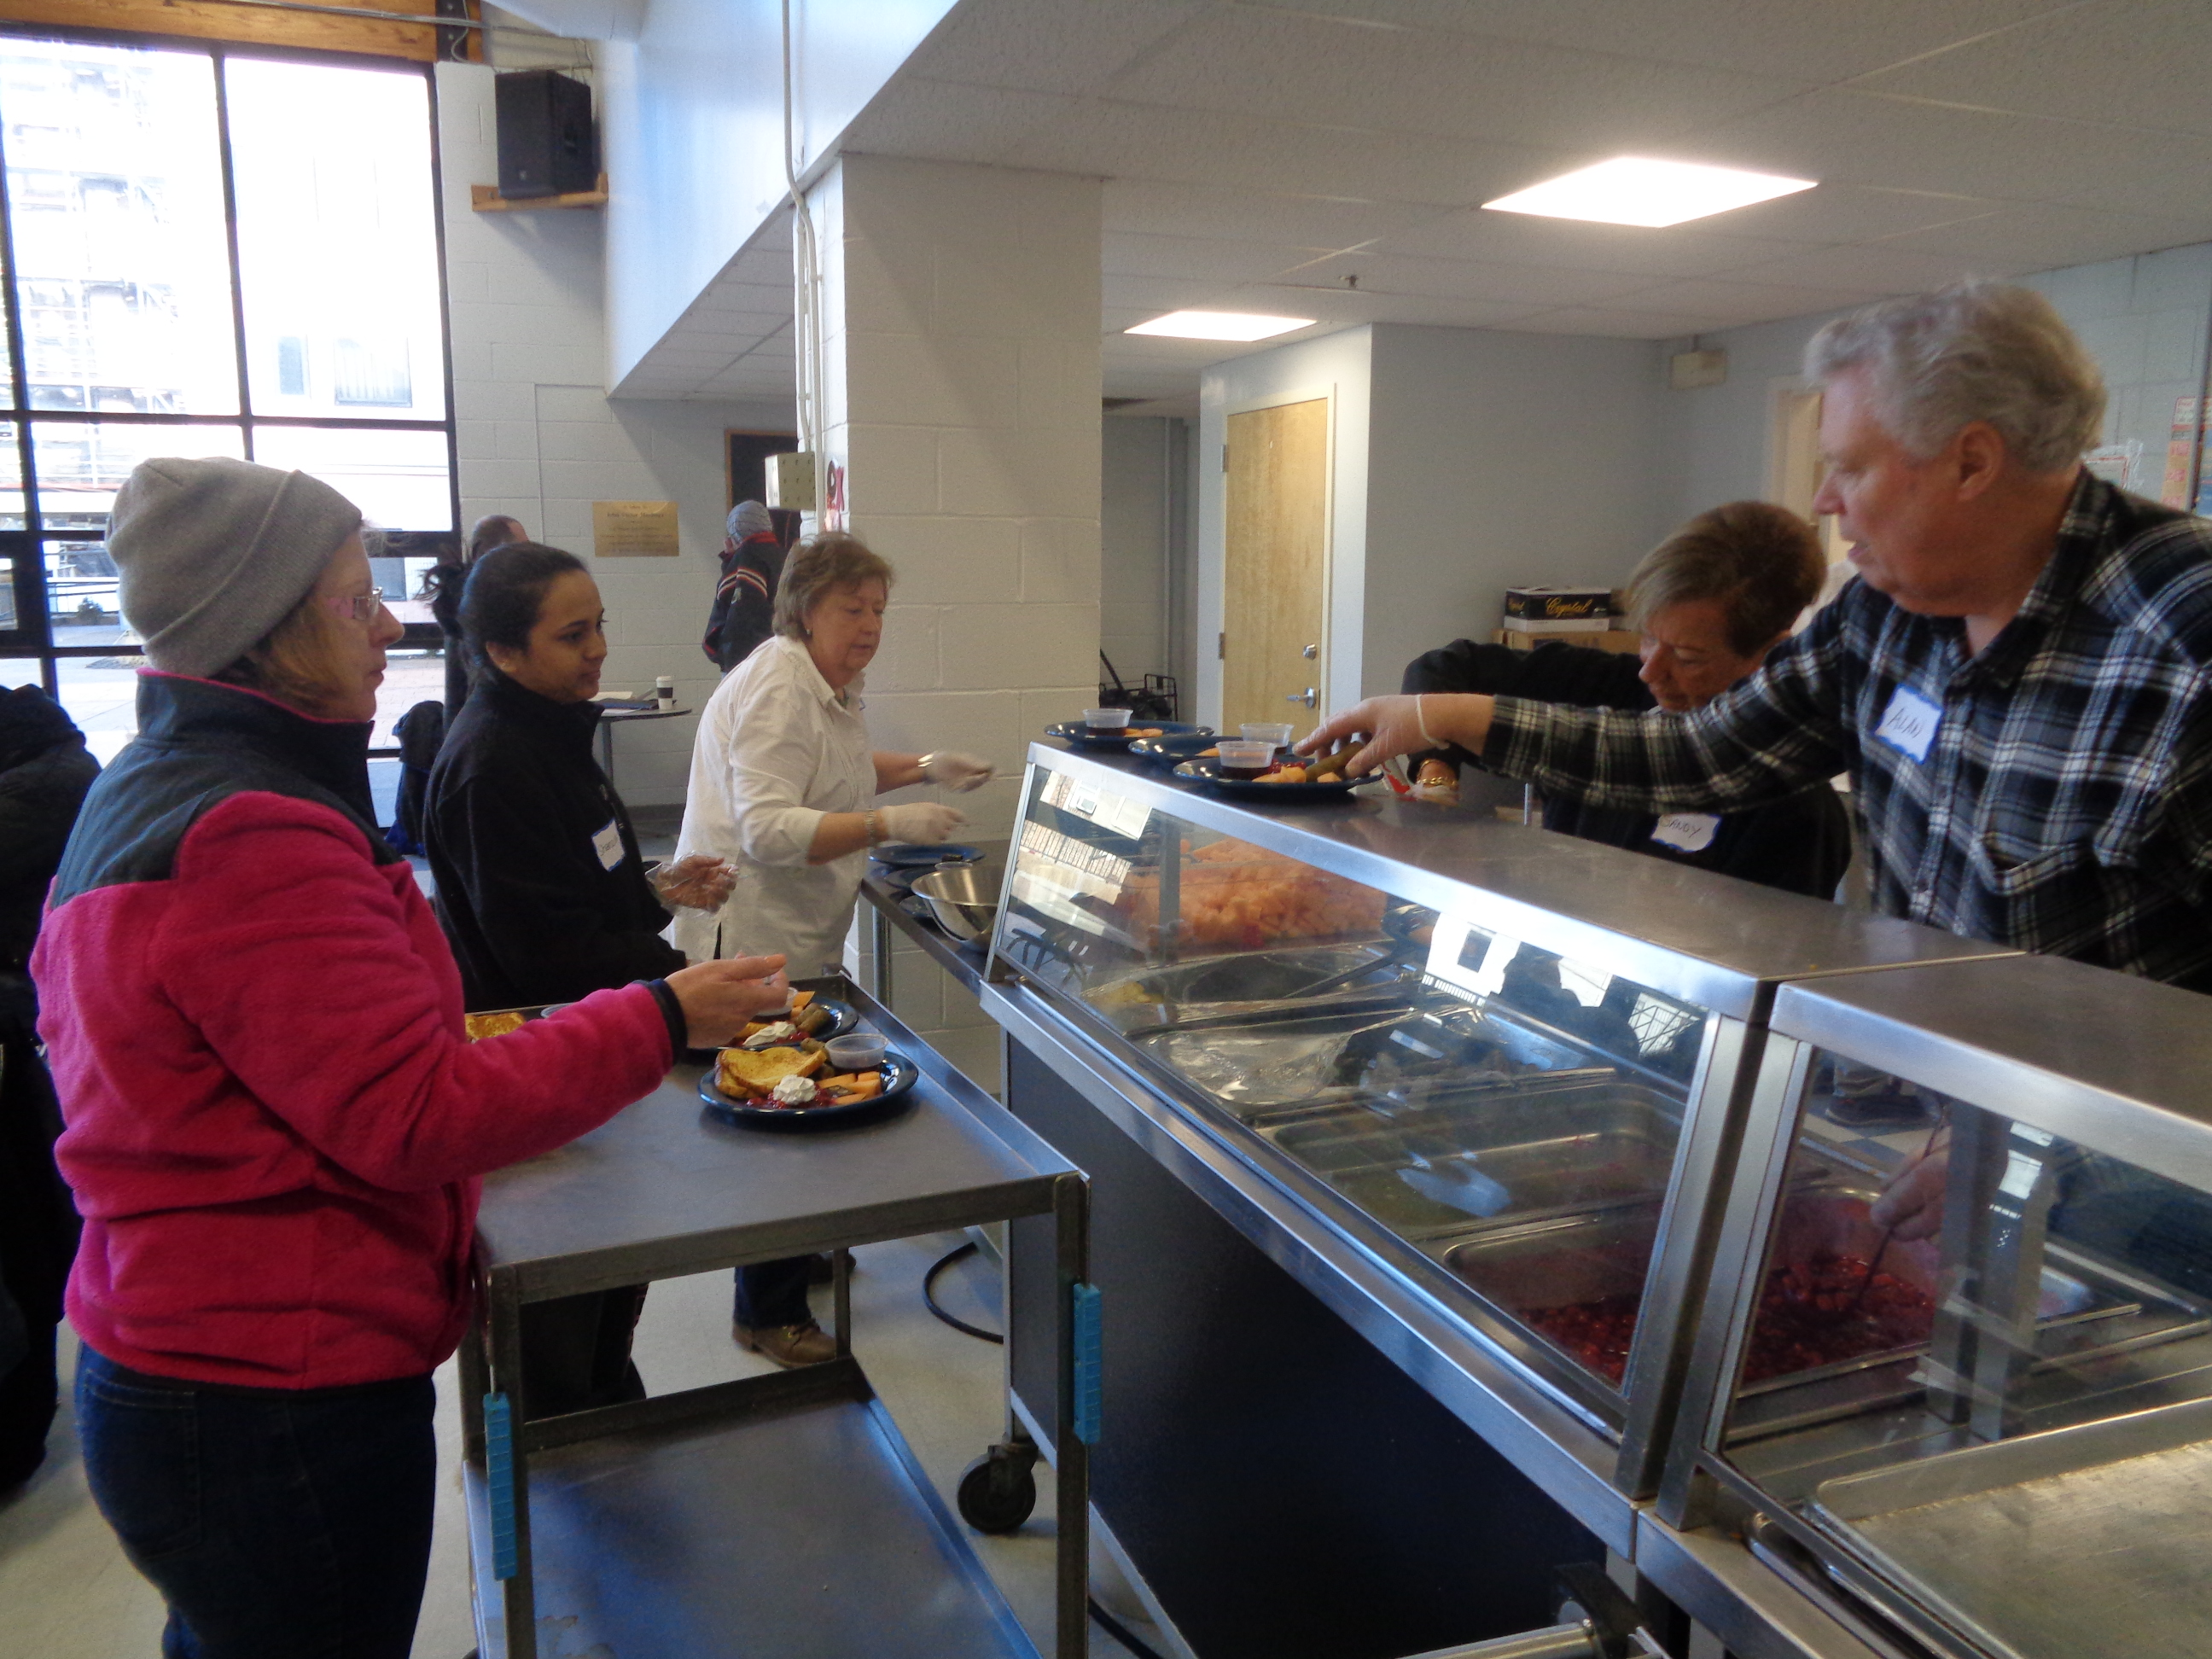 Evas Village Announces an Extension of its Breakfast Service Based on Programs Growth